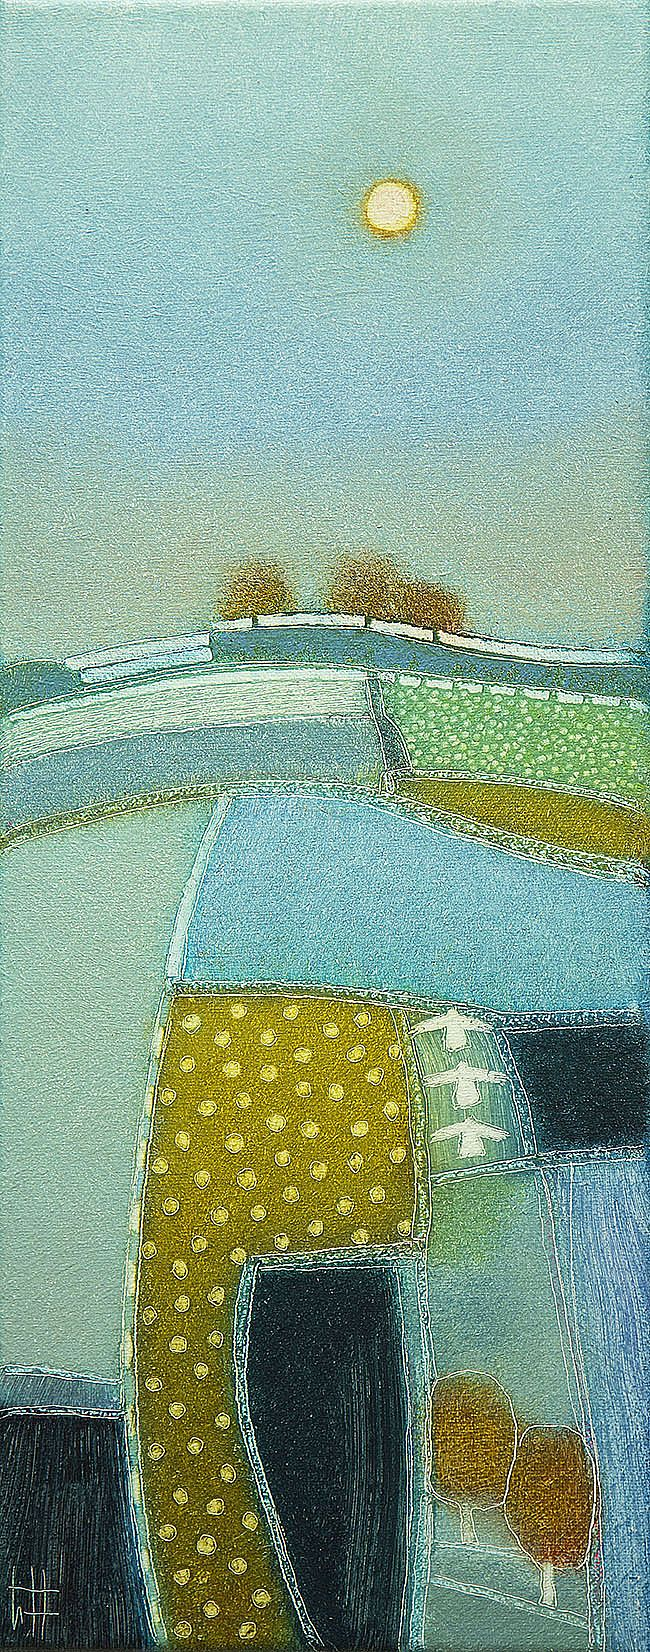 Rob van Hoek - With the setting sun